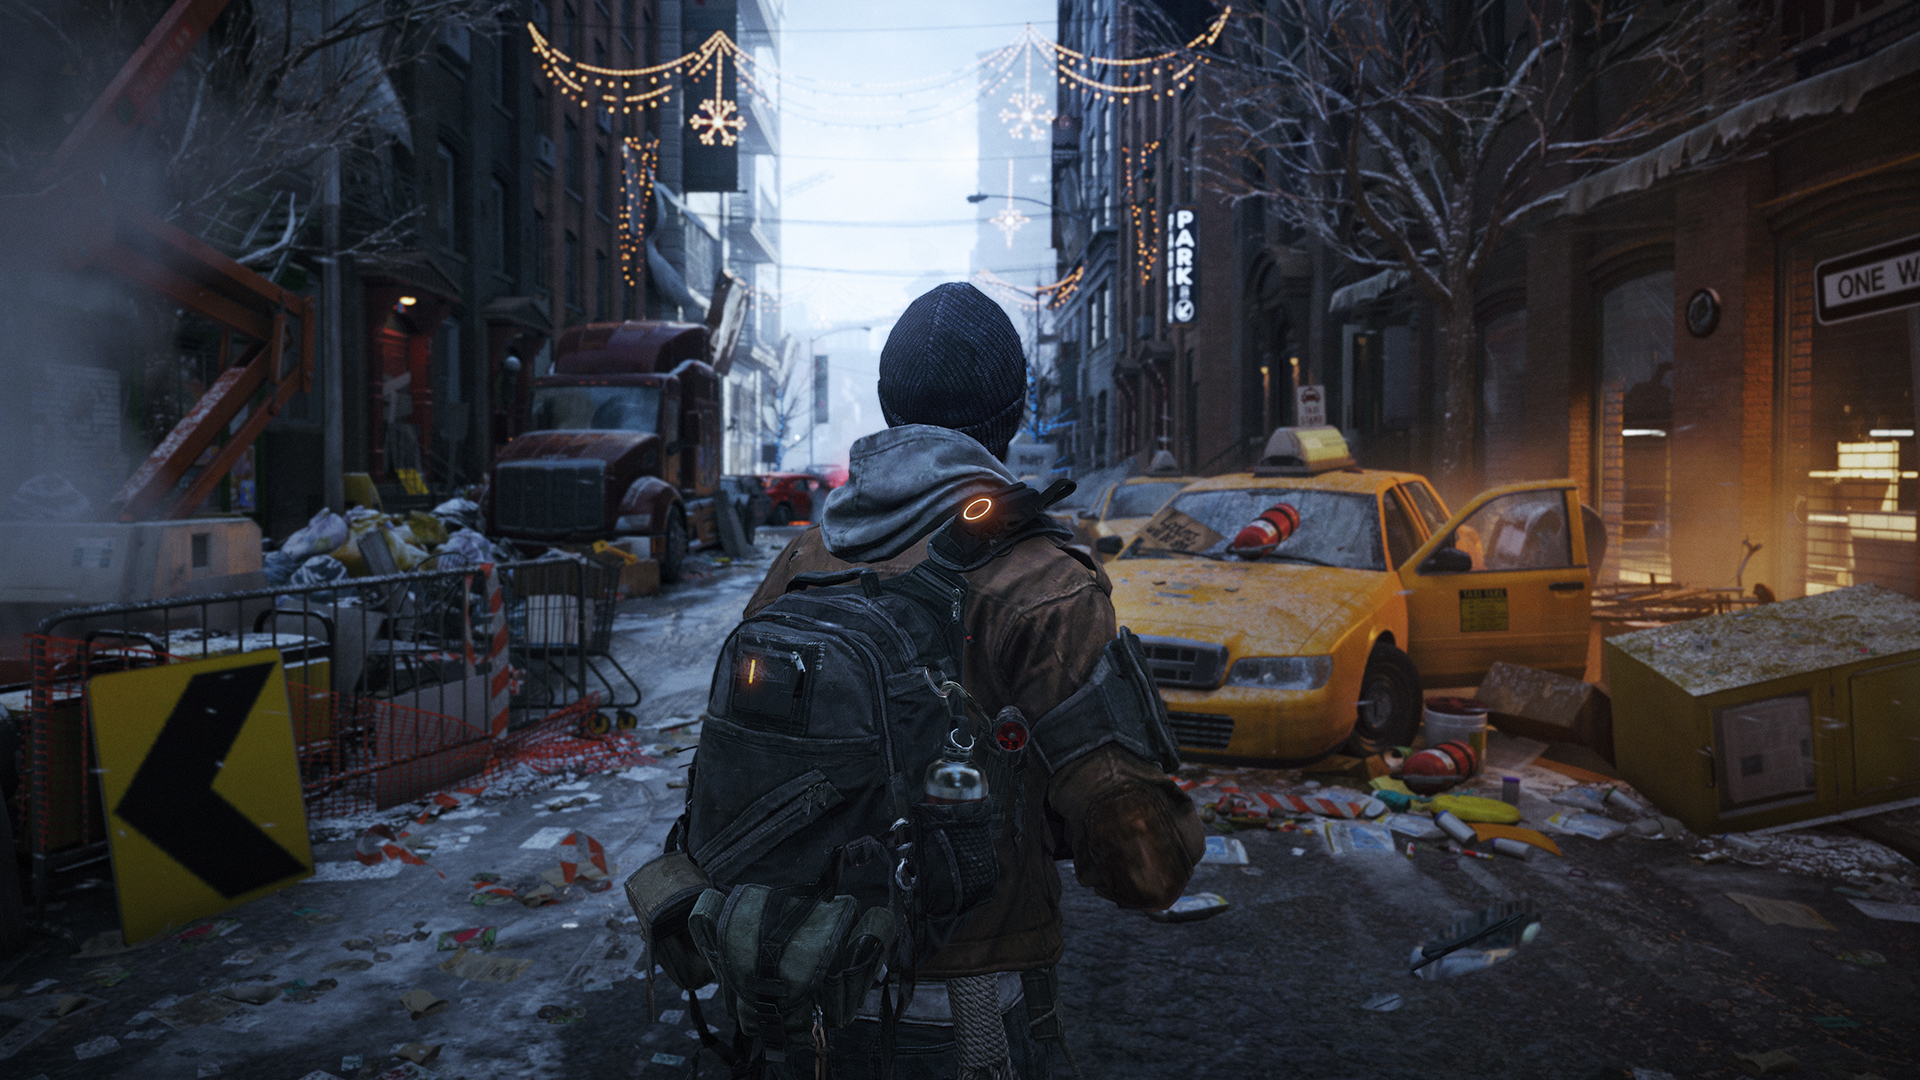 'The Division' goes cinematic in live-action story clips